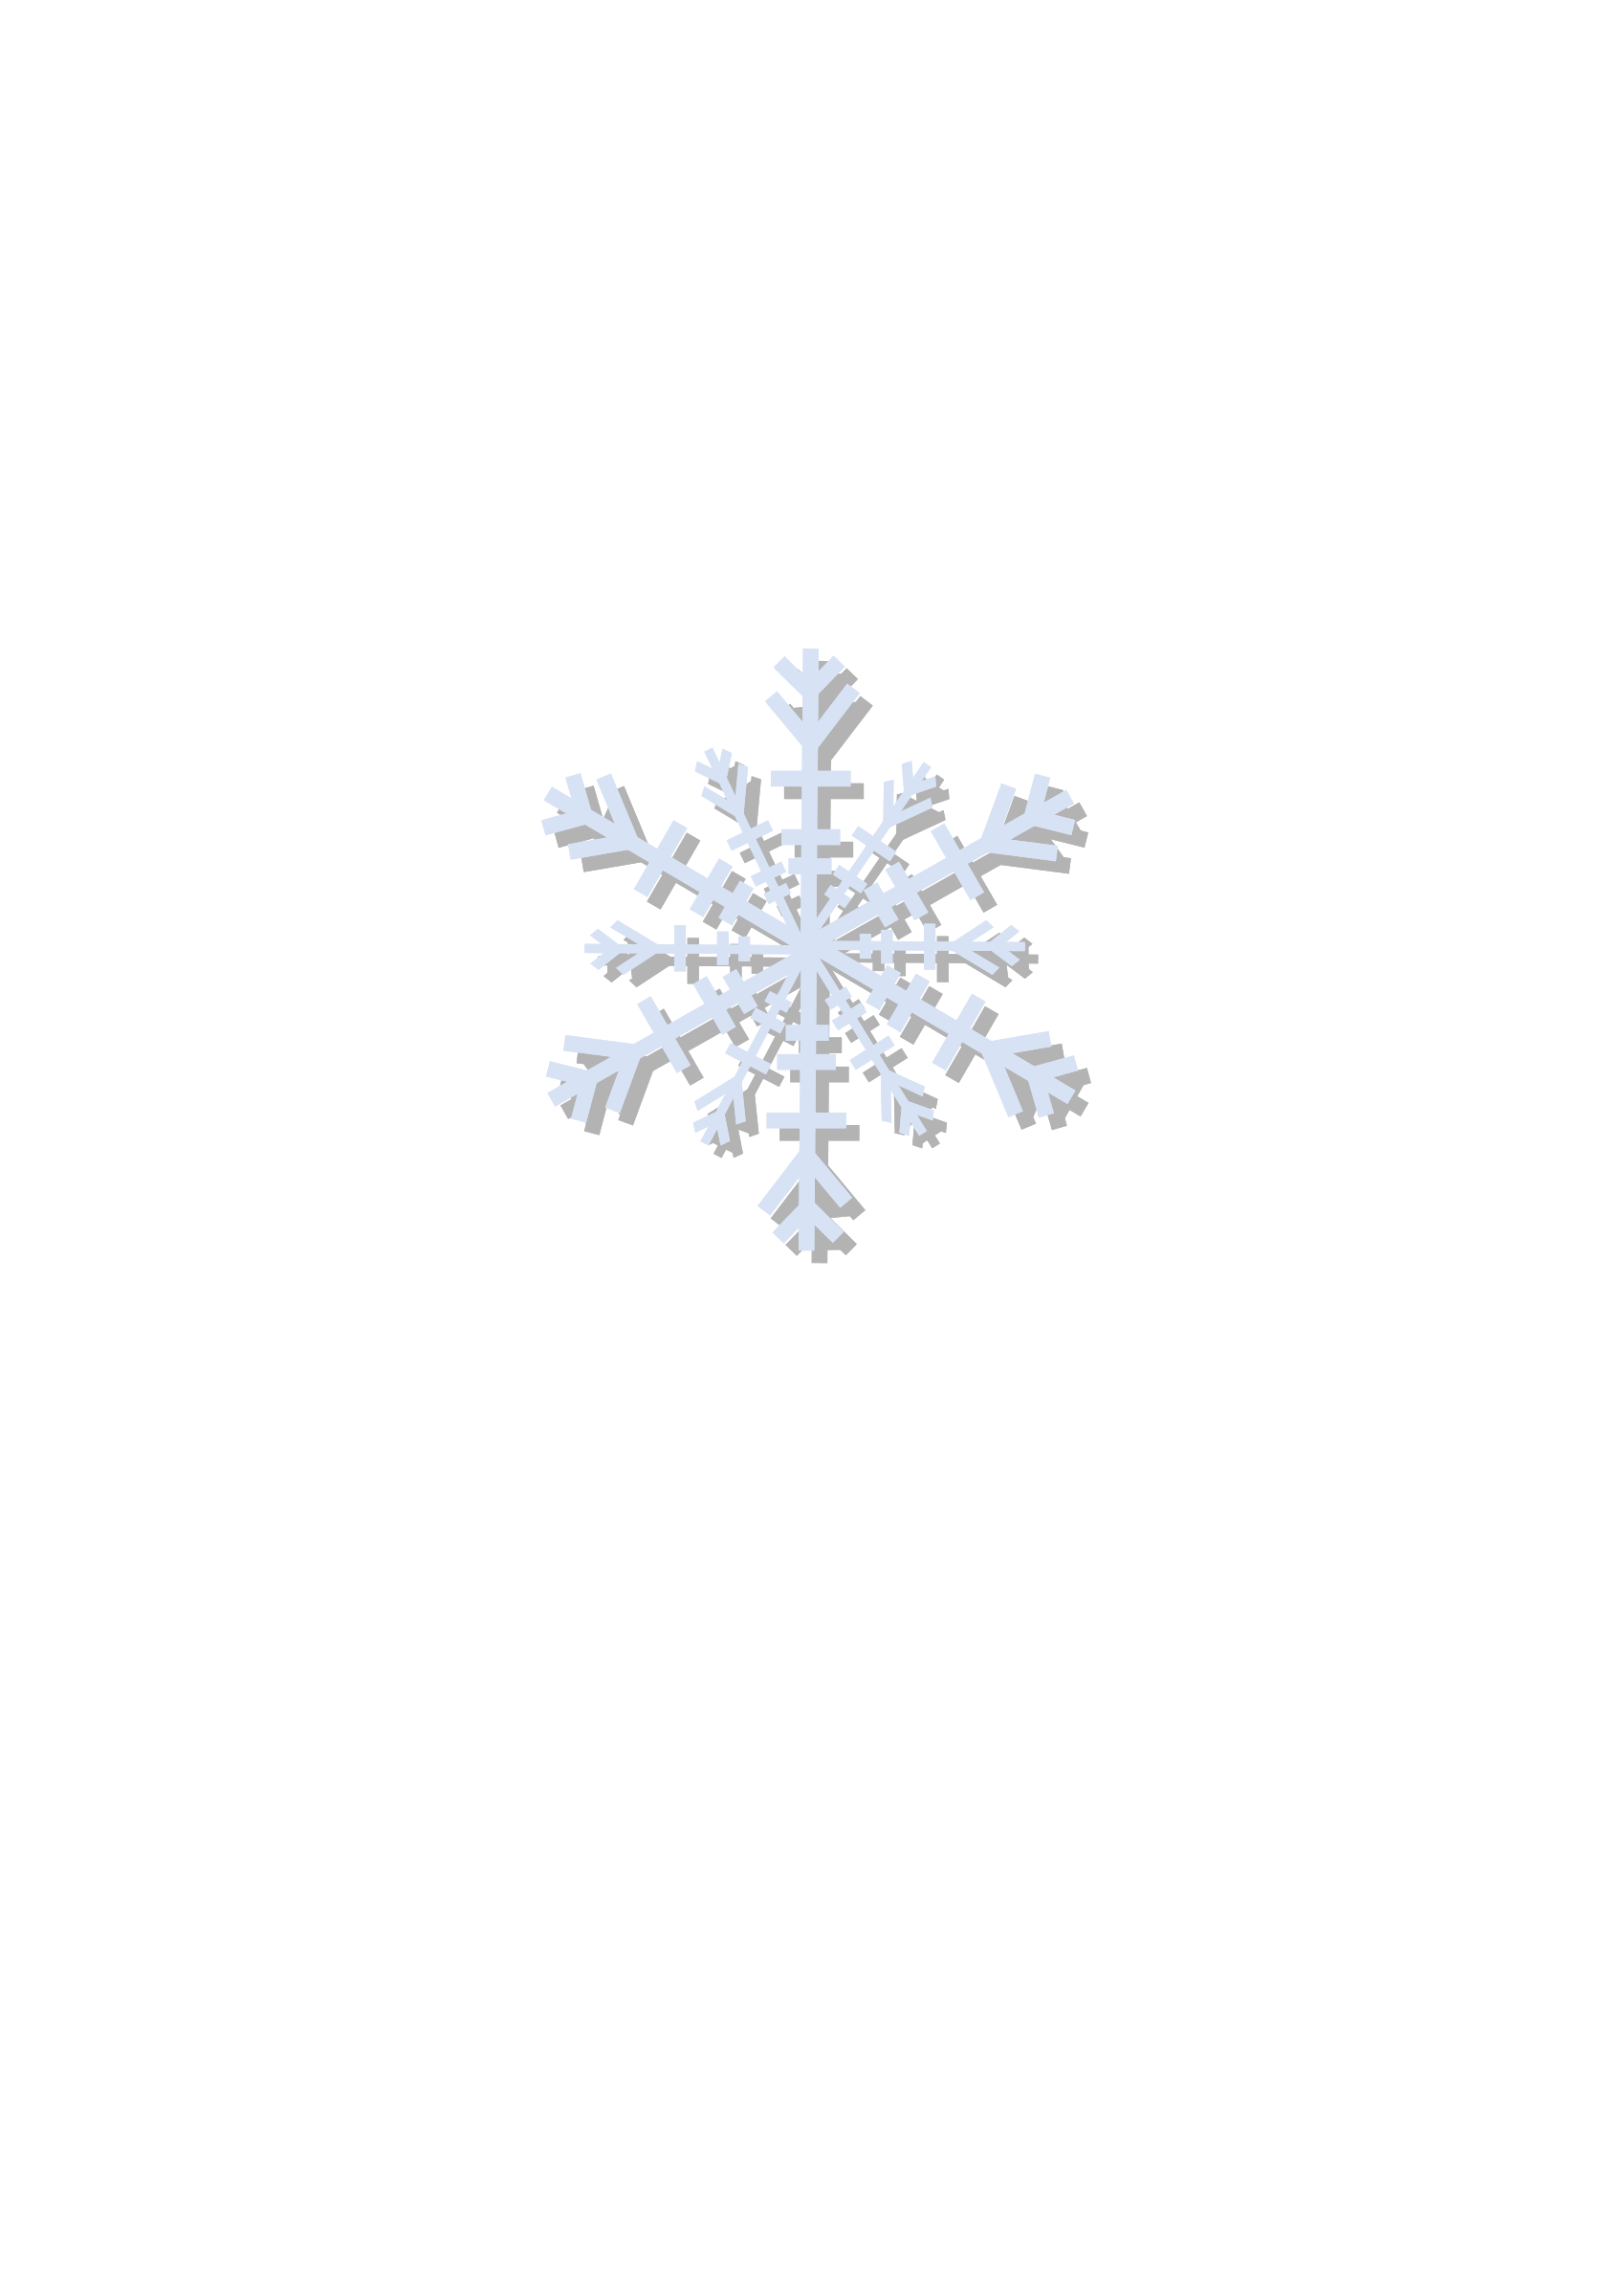 snow flake by PetrJ